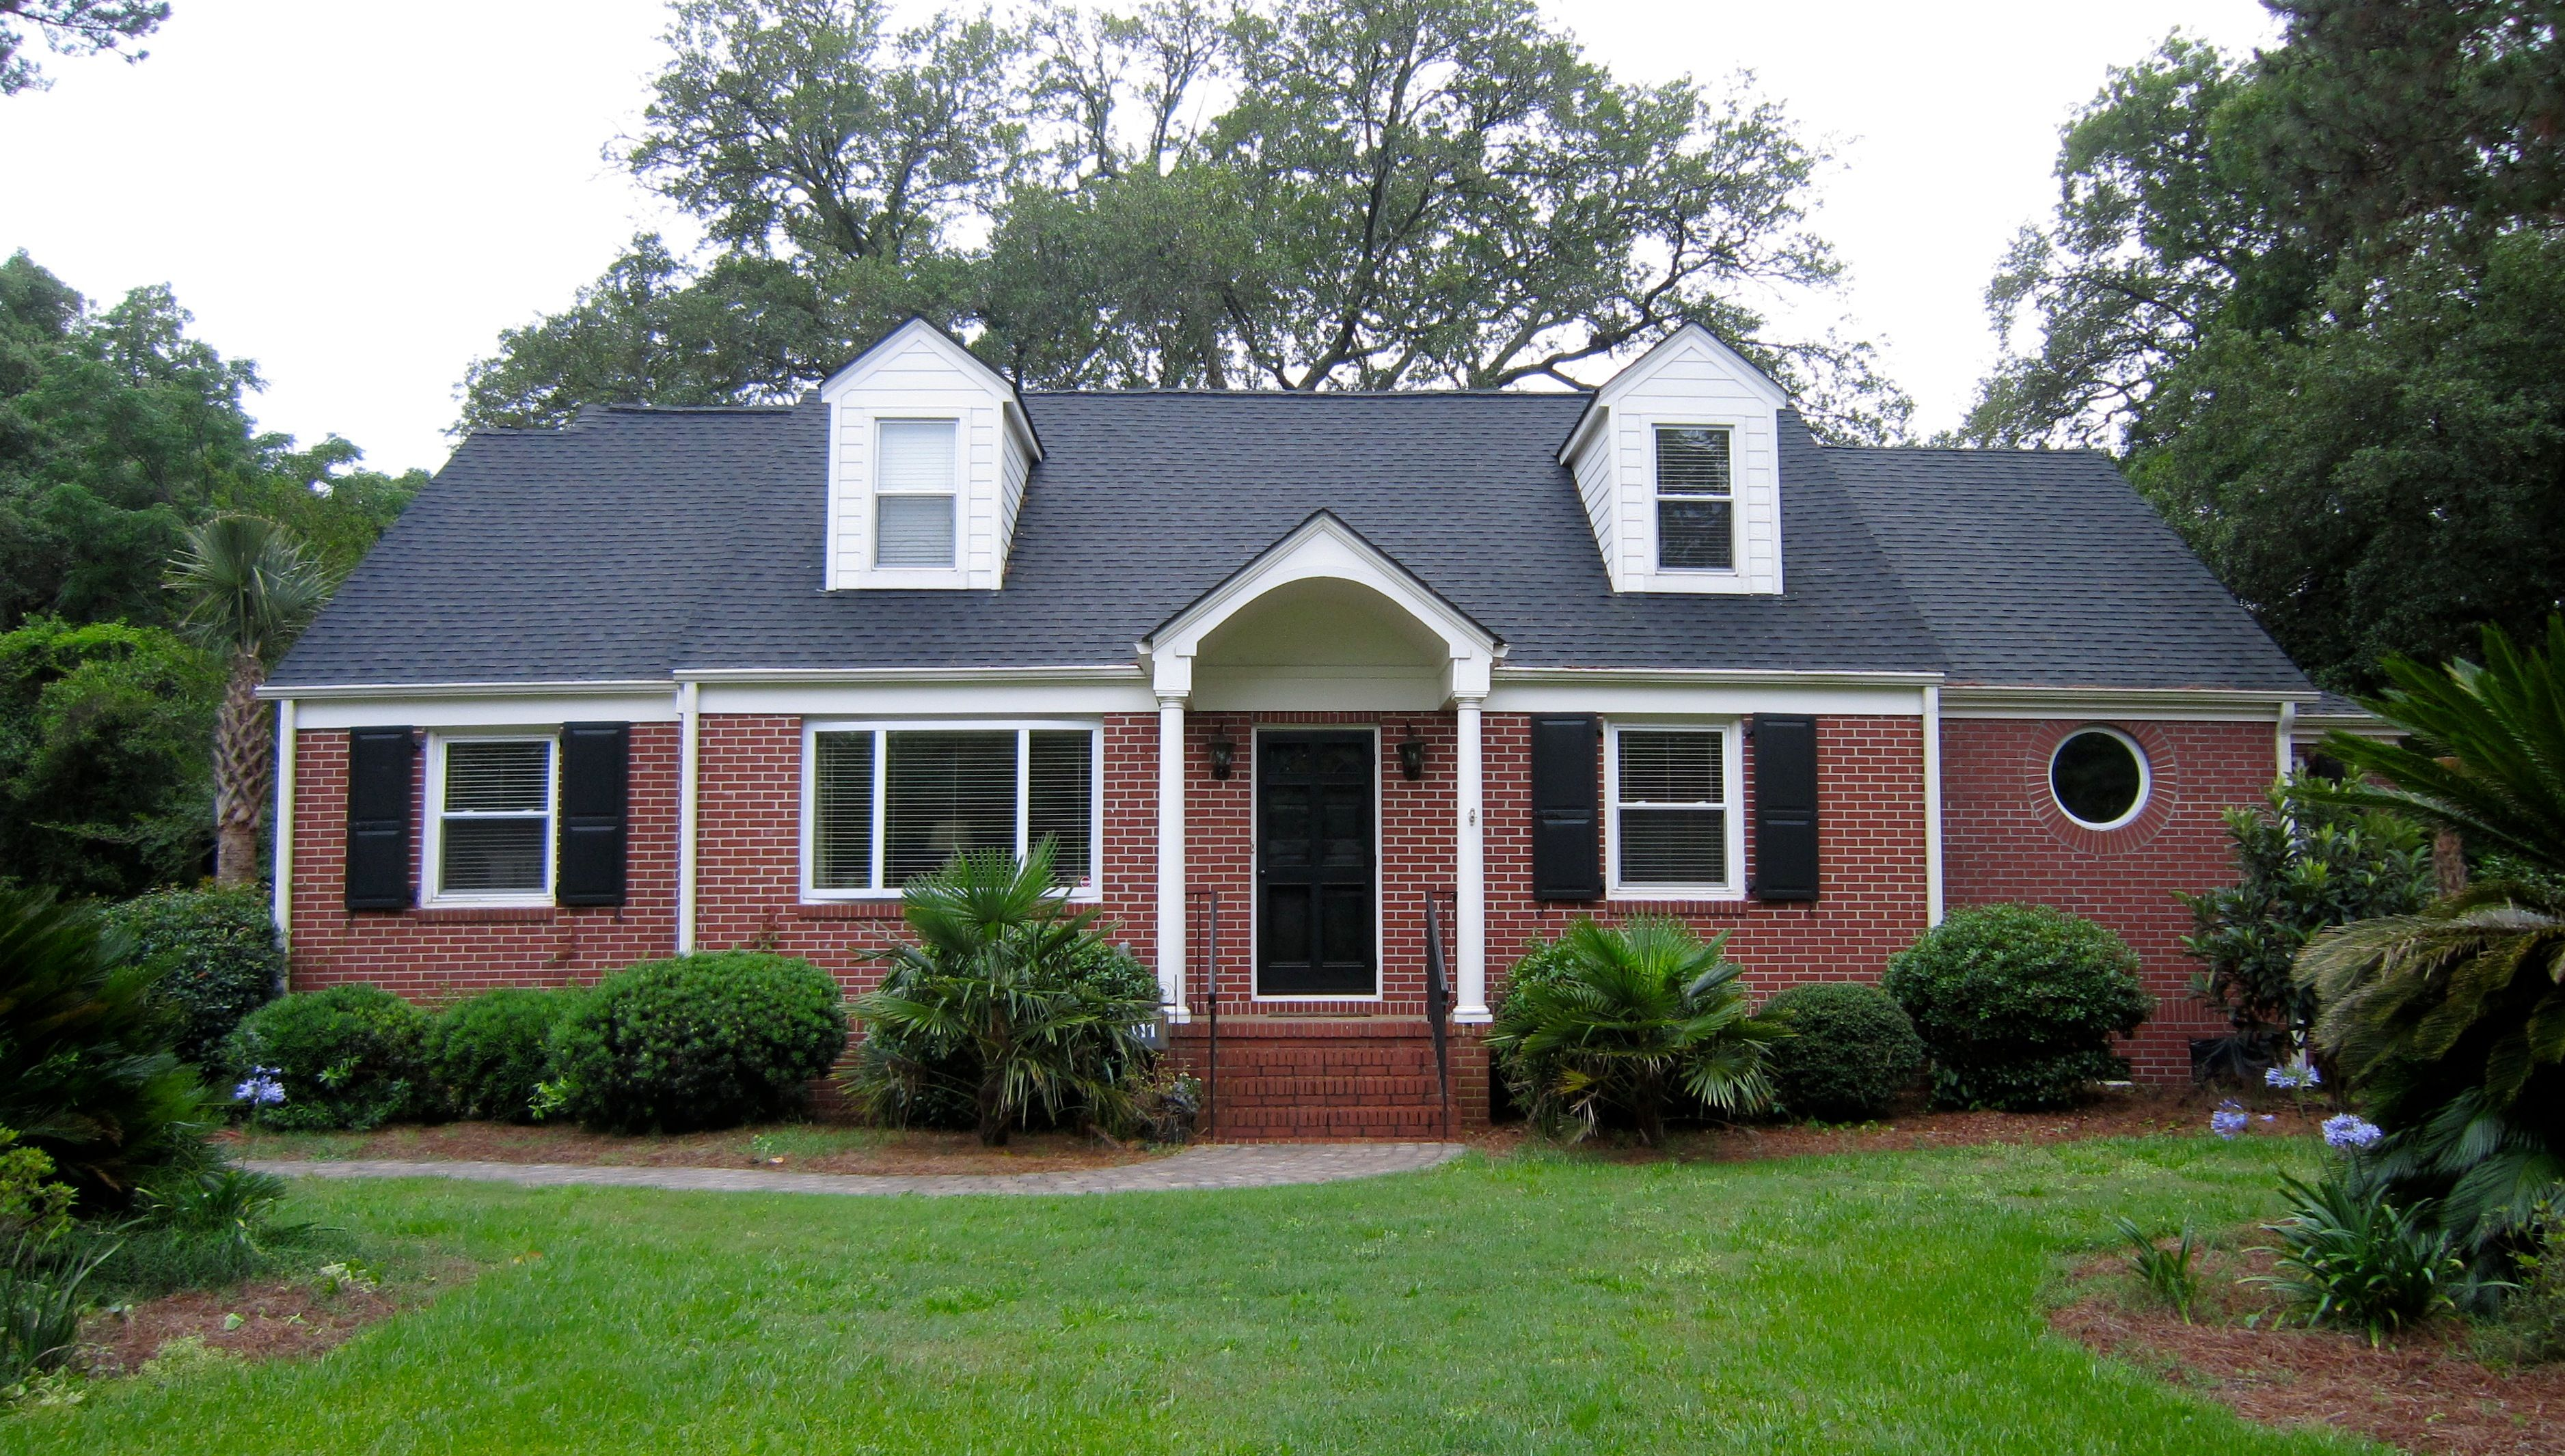 exterior paint color with red brick to paint or white wash - Best Exterior Paint Colors With Brick